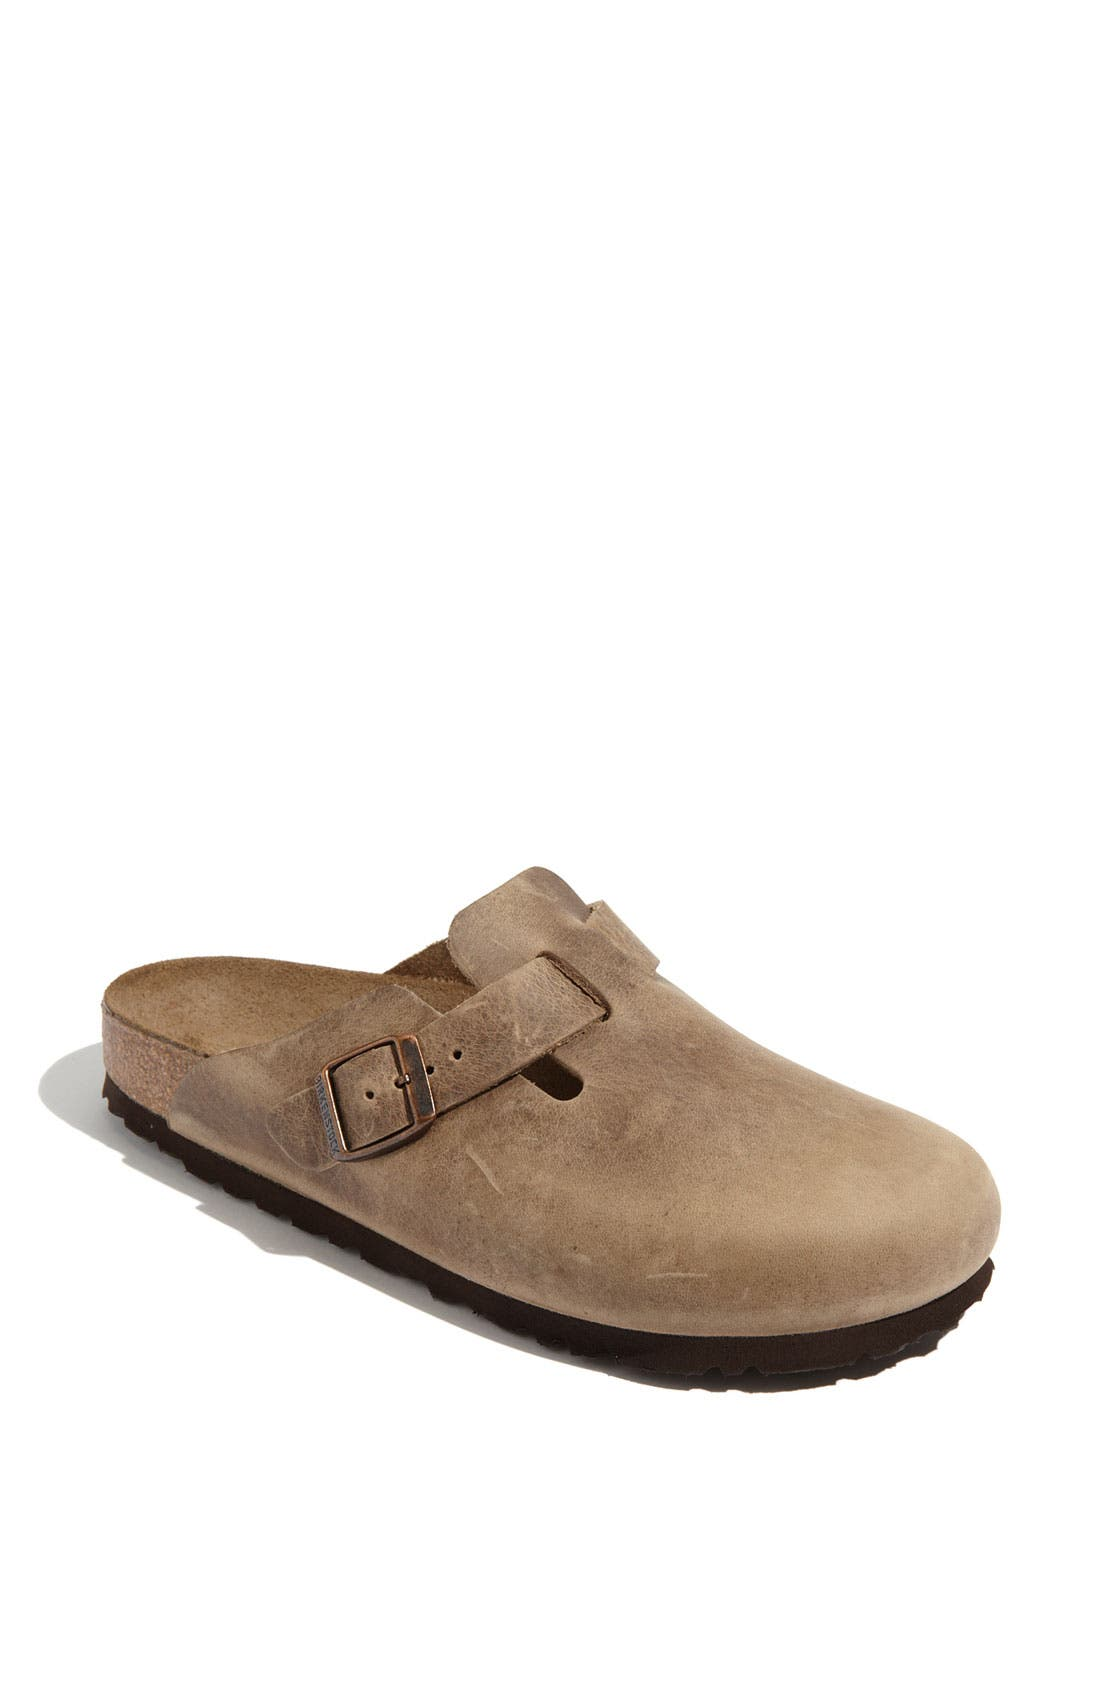 Main Image - Birkenstock 'Boston' Classic Oiled Leather Clog (Women)